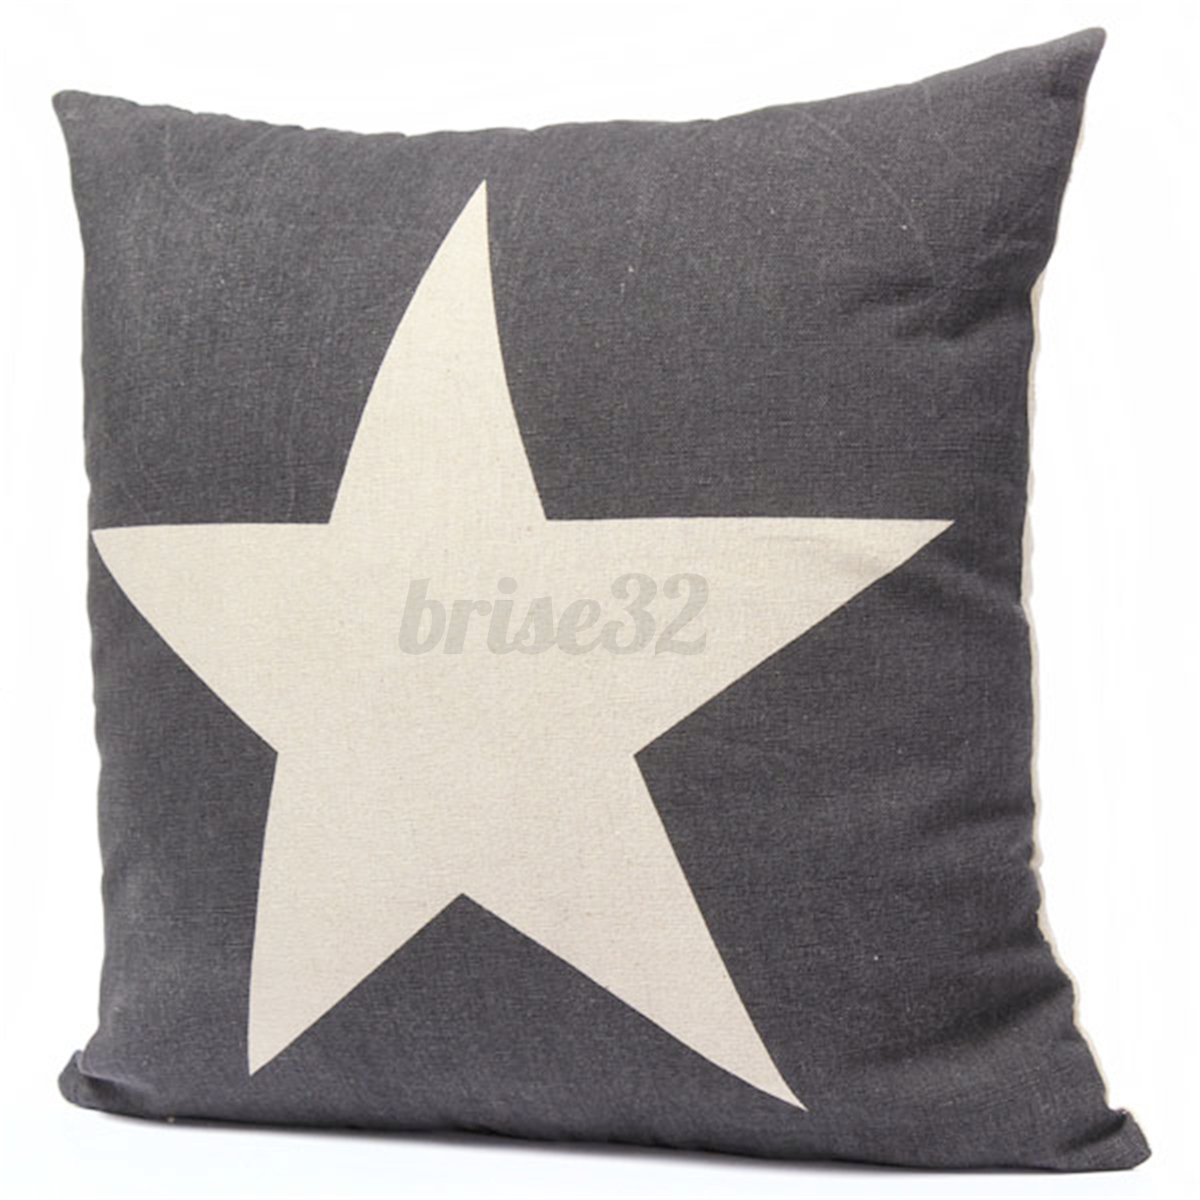 The Linen Store And Home Decor Cotten Linen Star Throw Pillow Case Cushion Cover Square